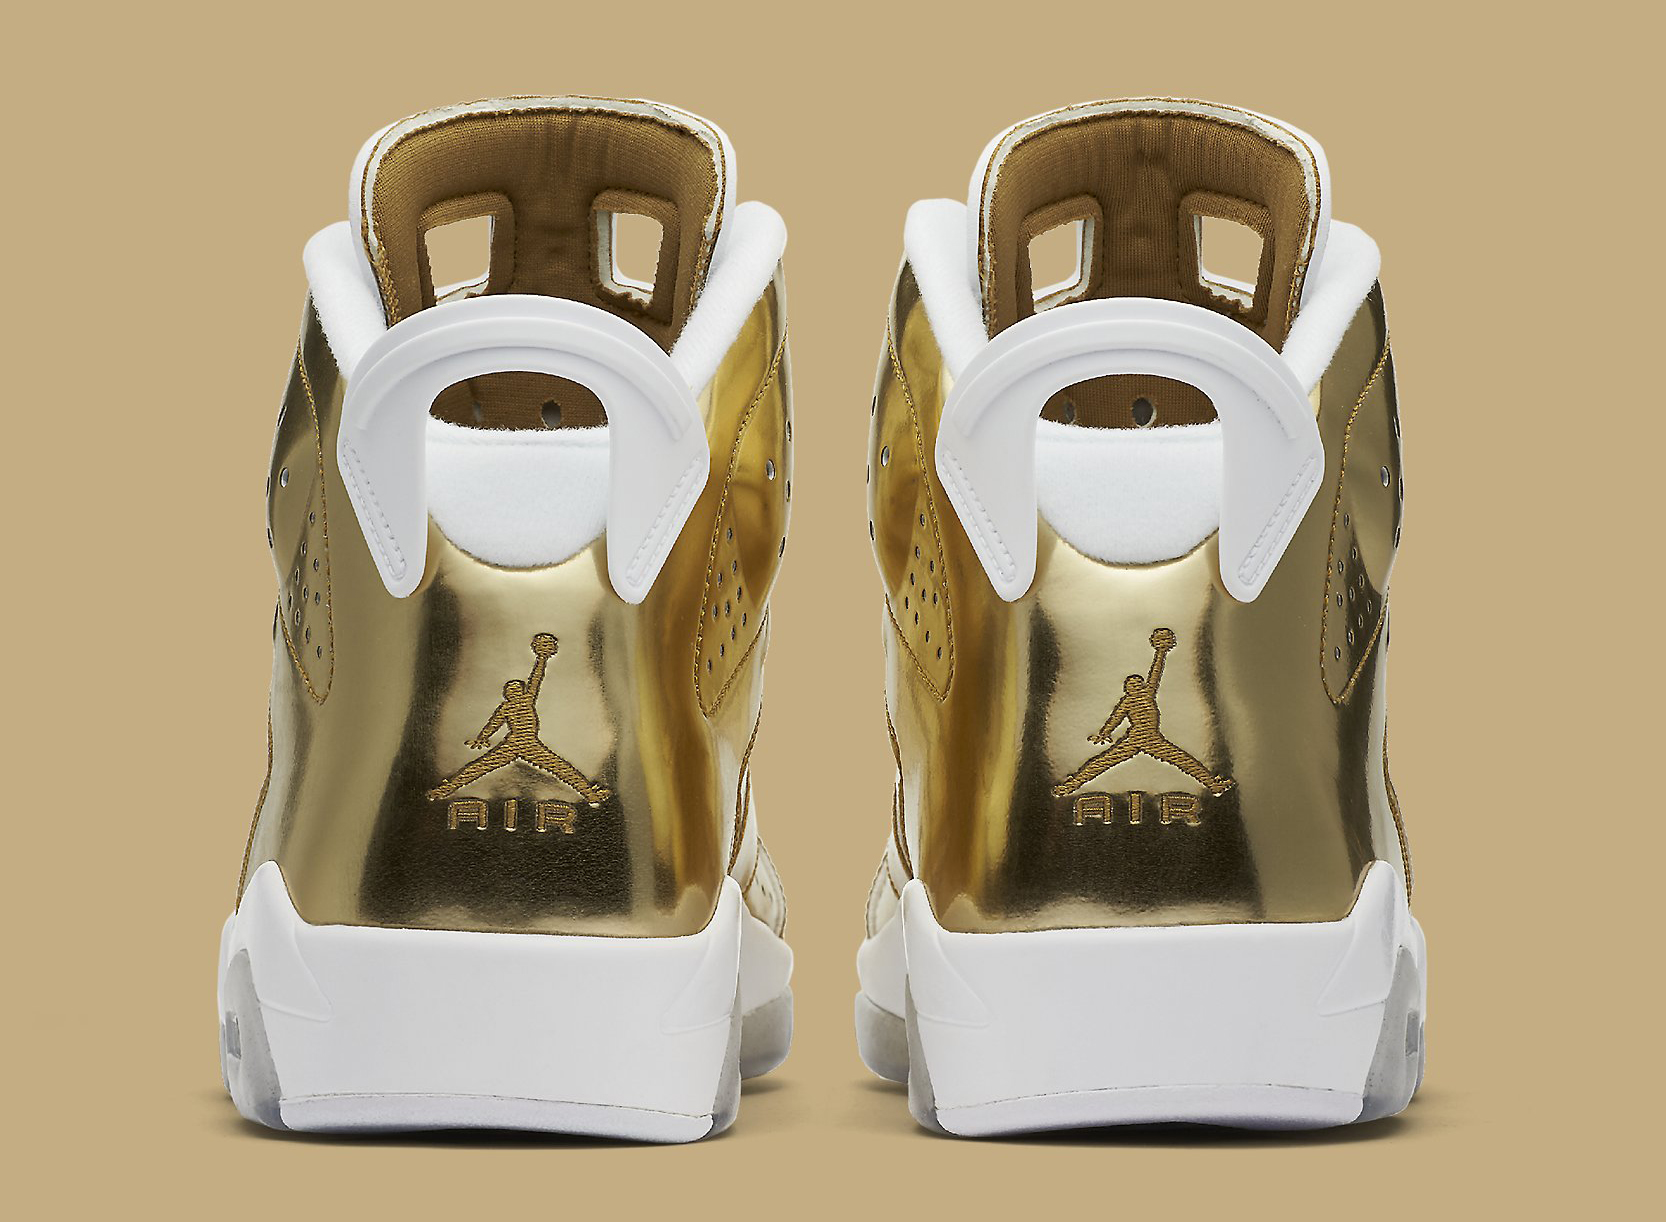 Gold Pinnacle Air Jordan 6 854271-730 Heel